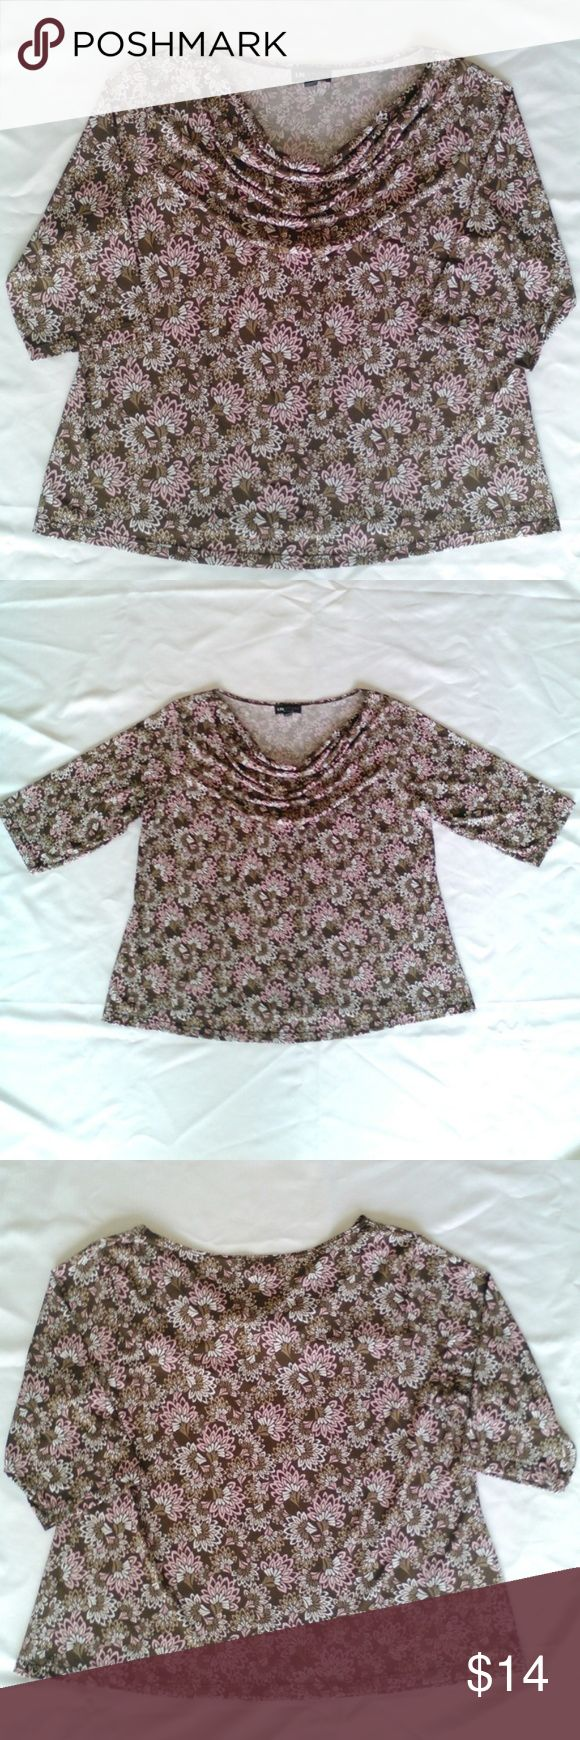 Floral Paisley Cowl Neck 3/4 Sleeve Drape Blouse This is a beautiful, brand new, unworn, I.N. Studios, round waterfall cowl neck top with 3/4 sleeves. It is a creamy chocolate color with white and light pink spliced tulip flower design pattern. This blouse is made from a very comfy, 96% Polyester 4% Spandex fabric that has a nice stretch to it as well as silky soft texture. I think this would match perfectly with a pair of denim jeans, or any black or solid colored skirt! IN Studios Tops…